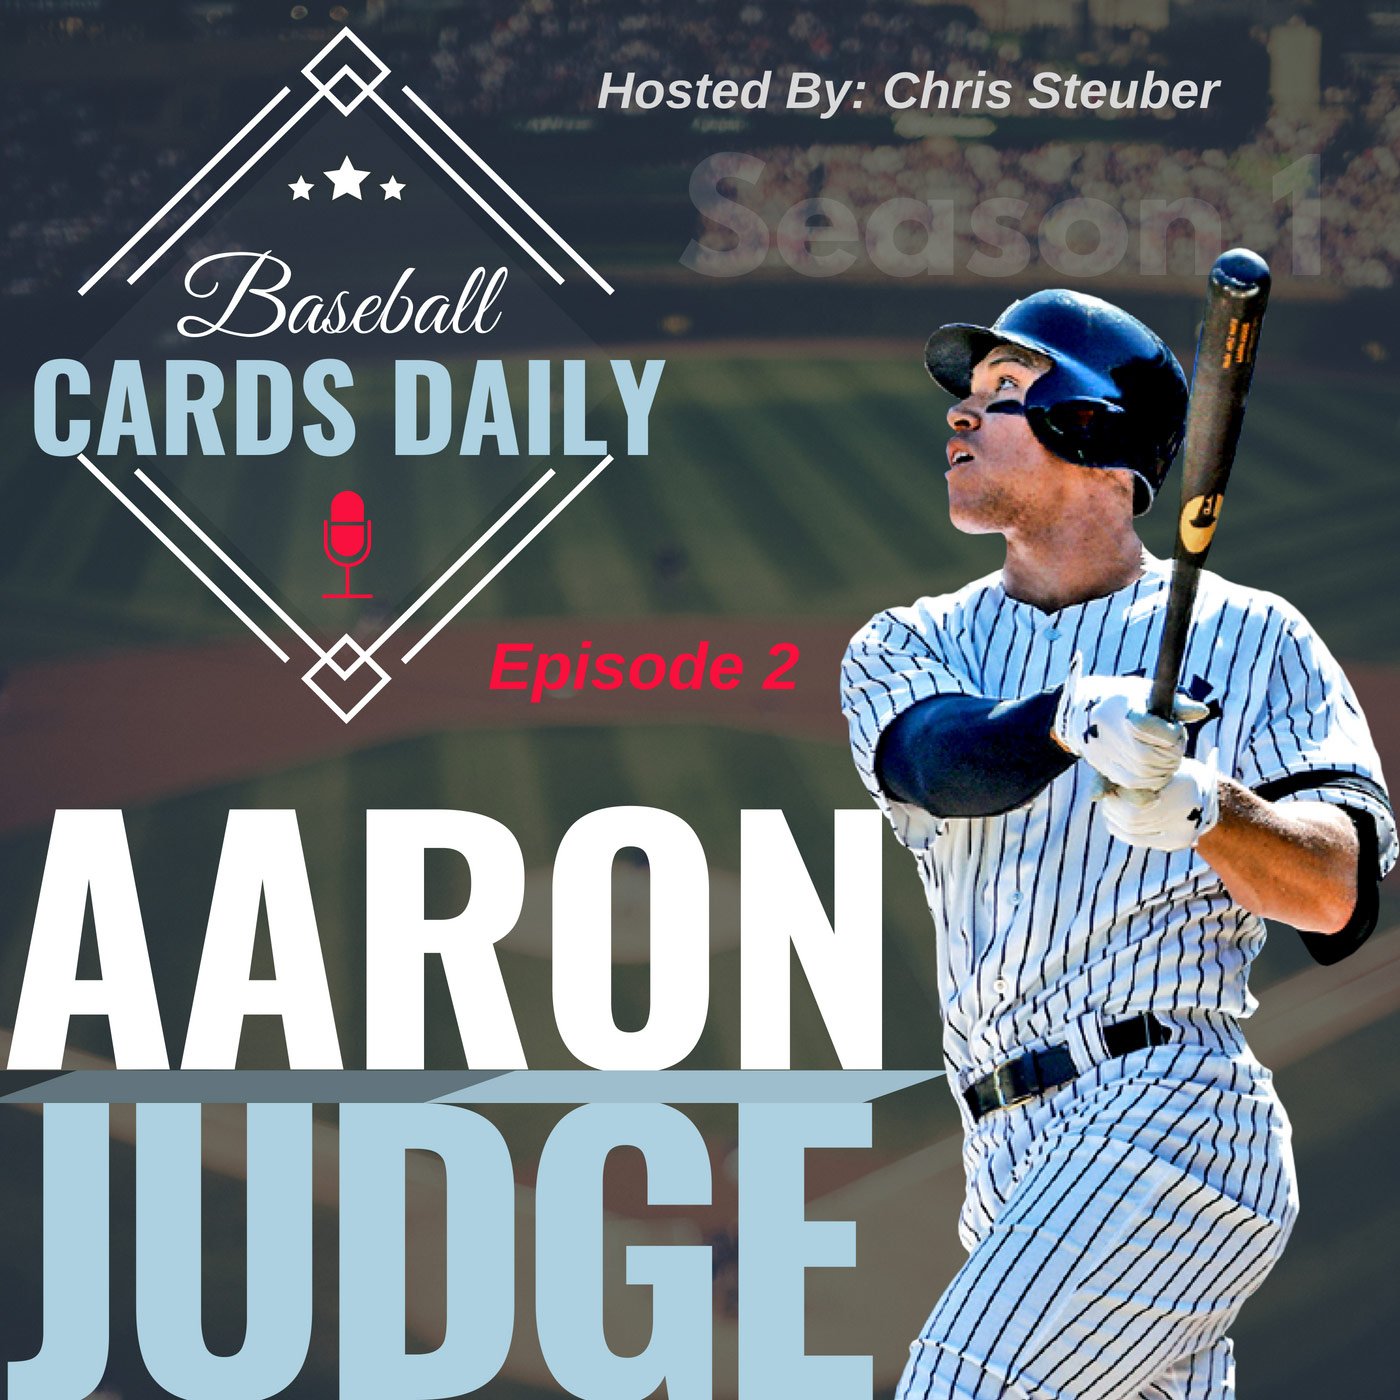 Episode 2 Aaron Judge